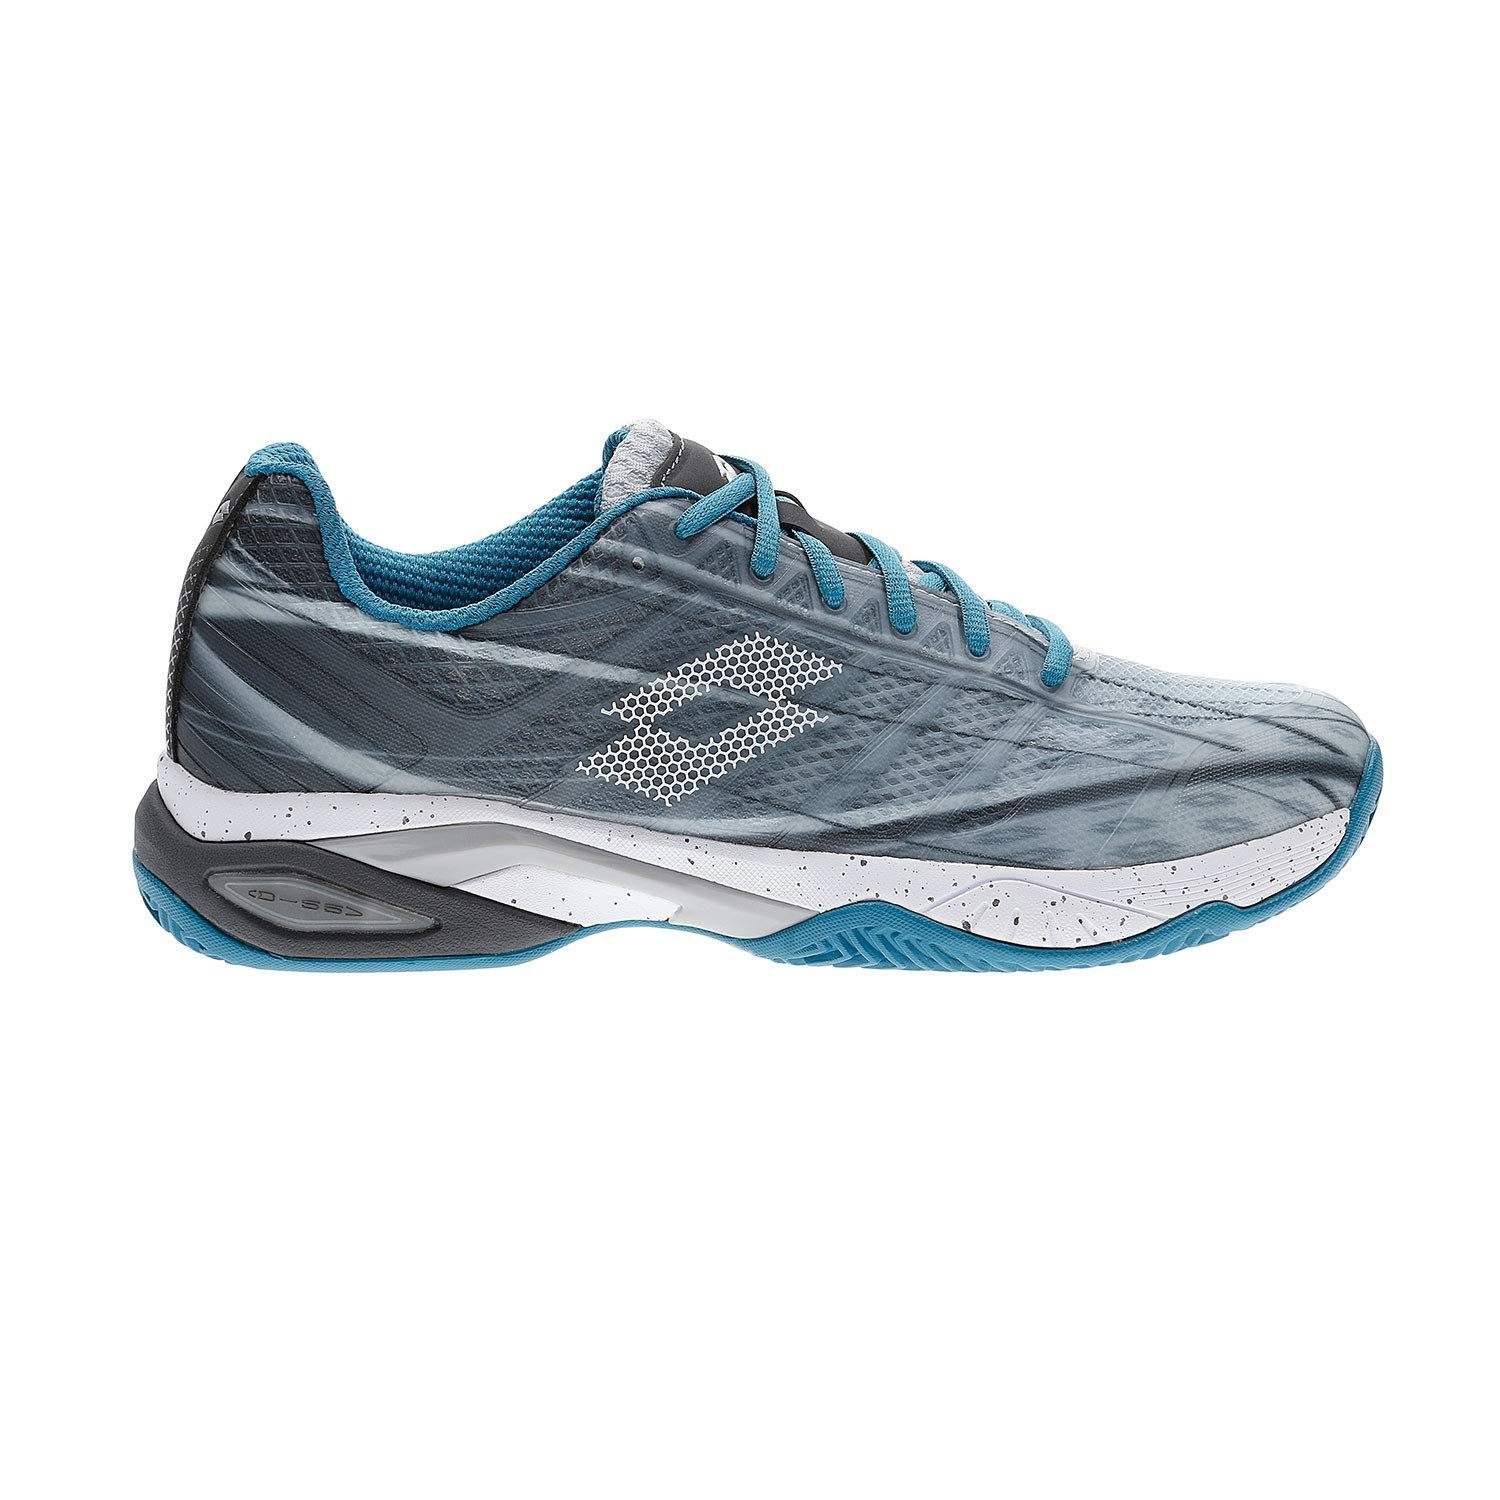 Zapatillas Lotto Mirage 300 Cly Hombre 210733. Silver Metal 2/All ...